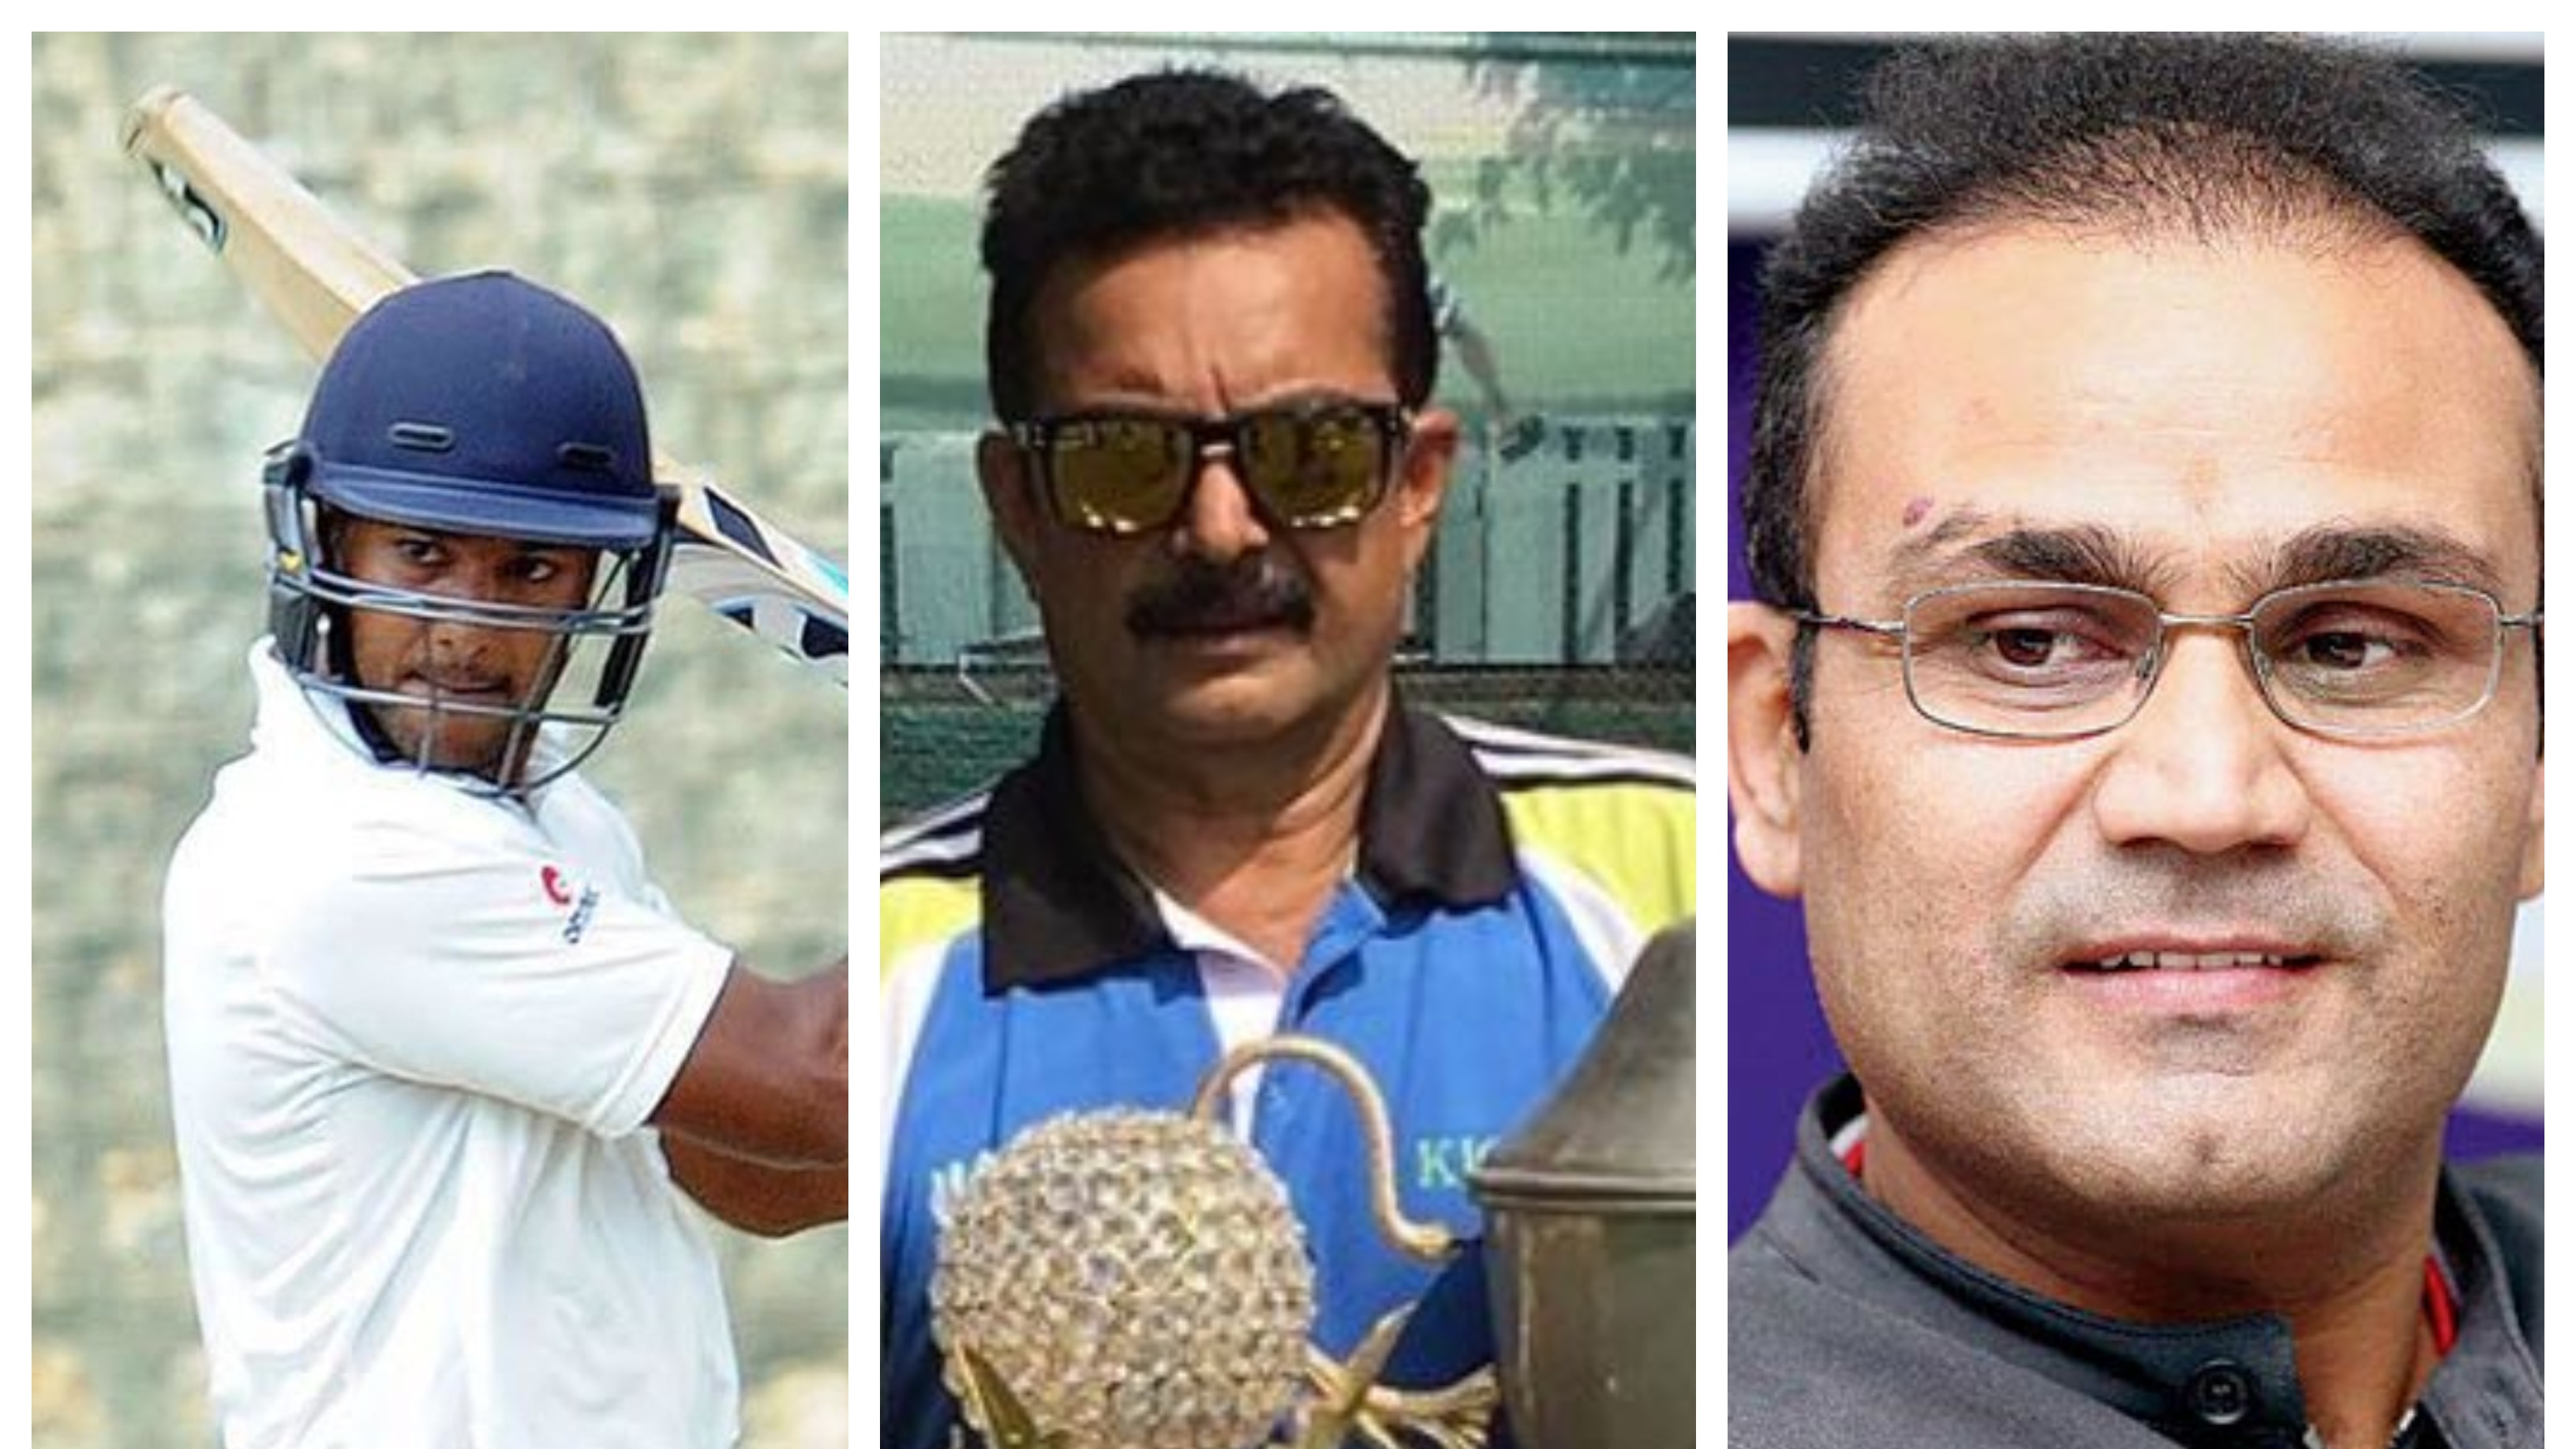 AUS v IND 2018-19: Mayank Agarwal's coach expects Virender Sehwag-esque knock from his ward in Melbourne